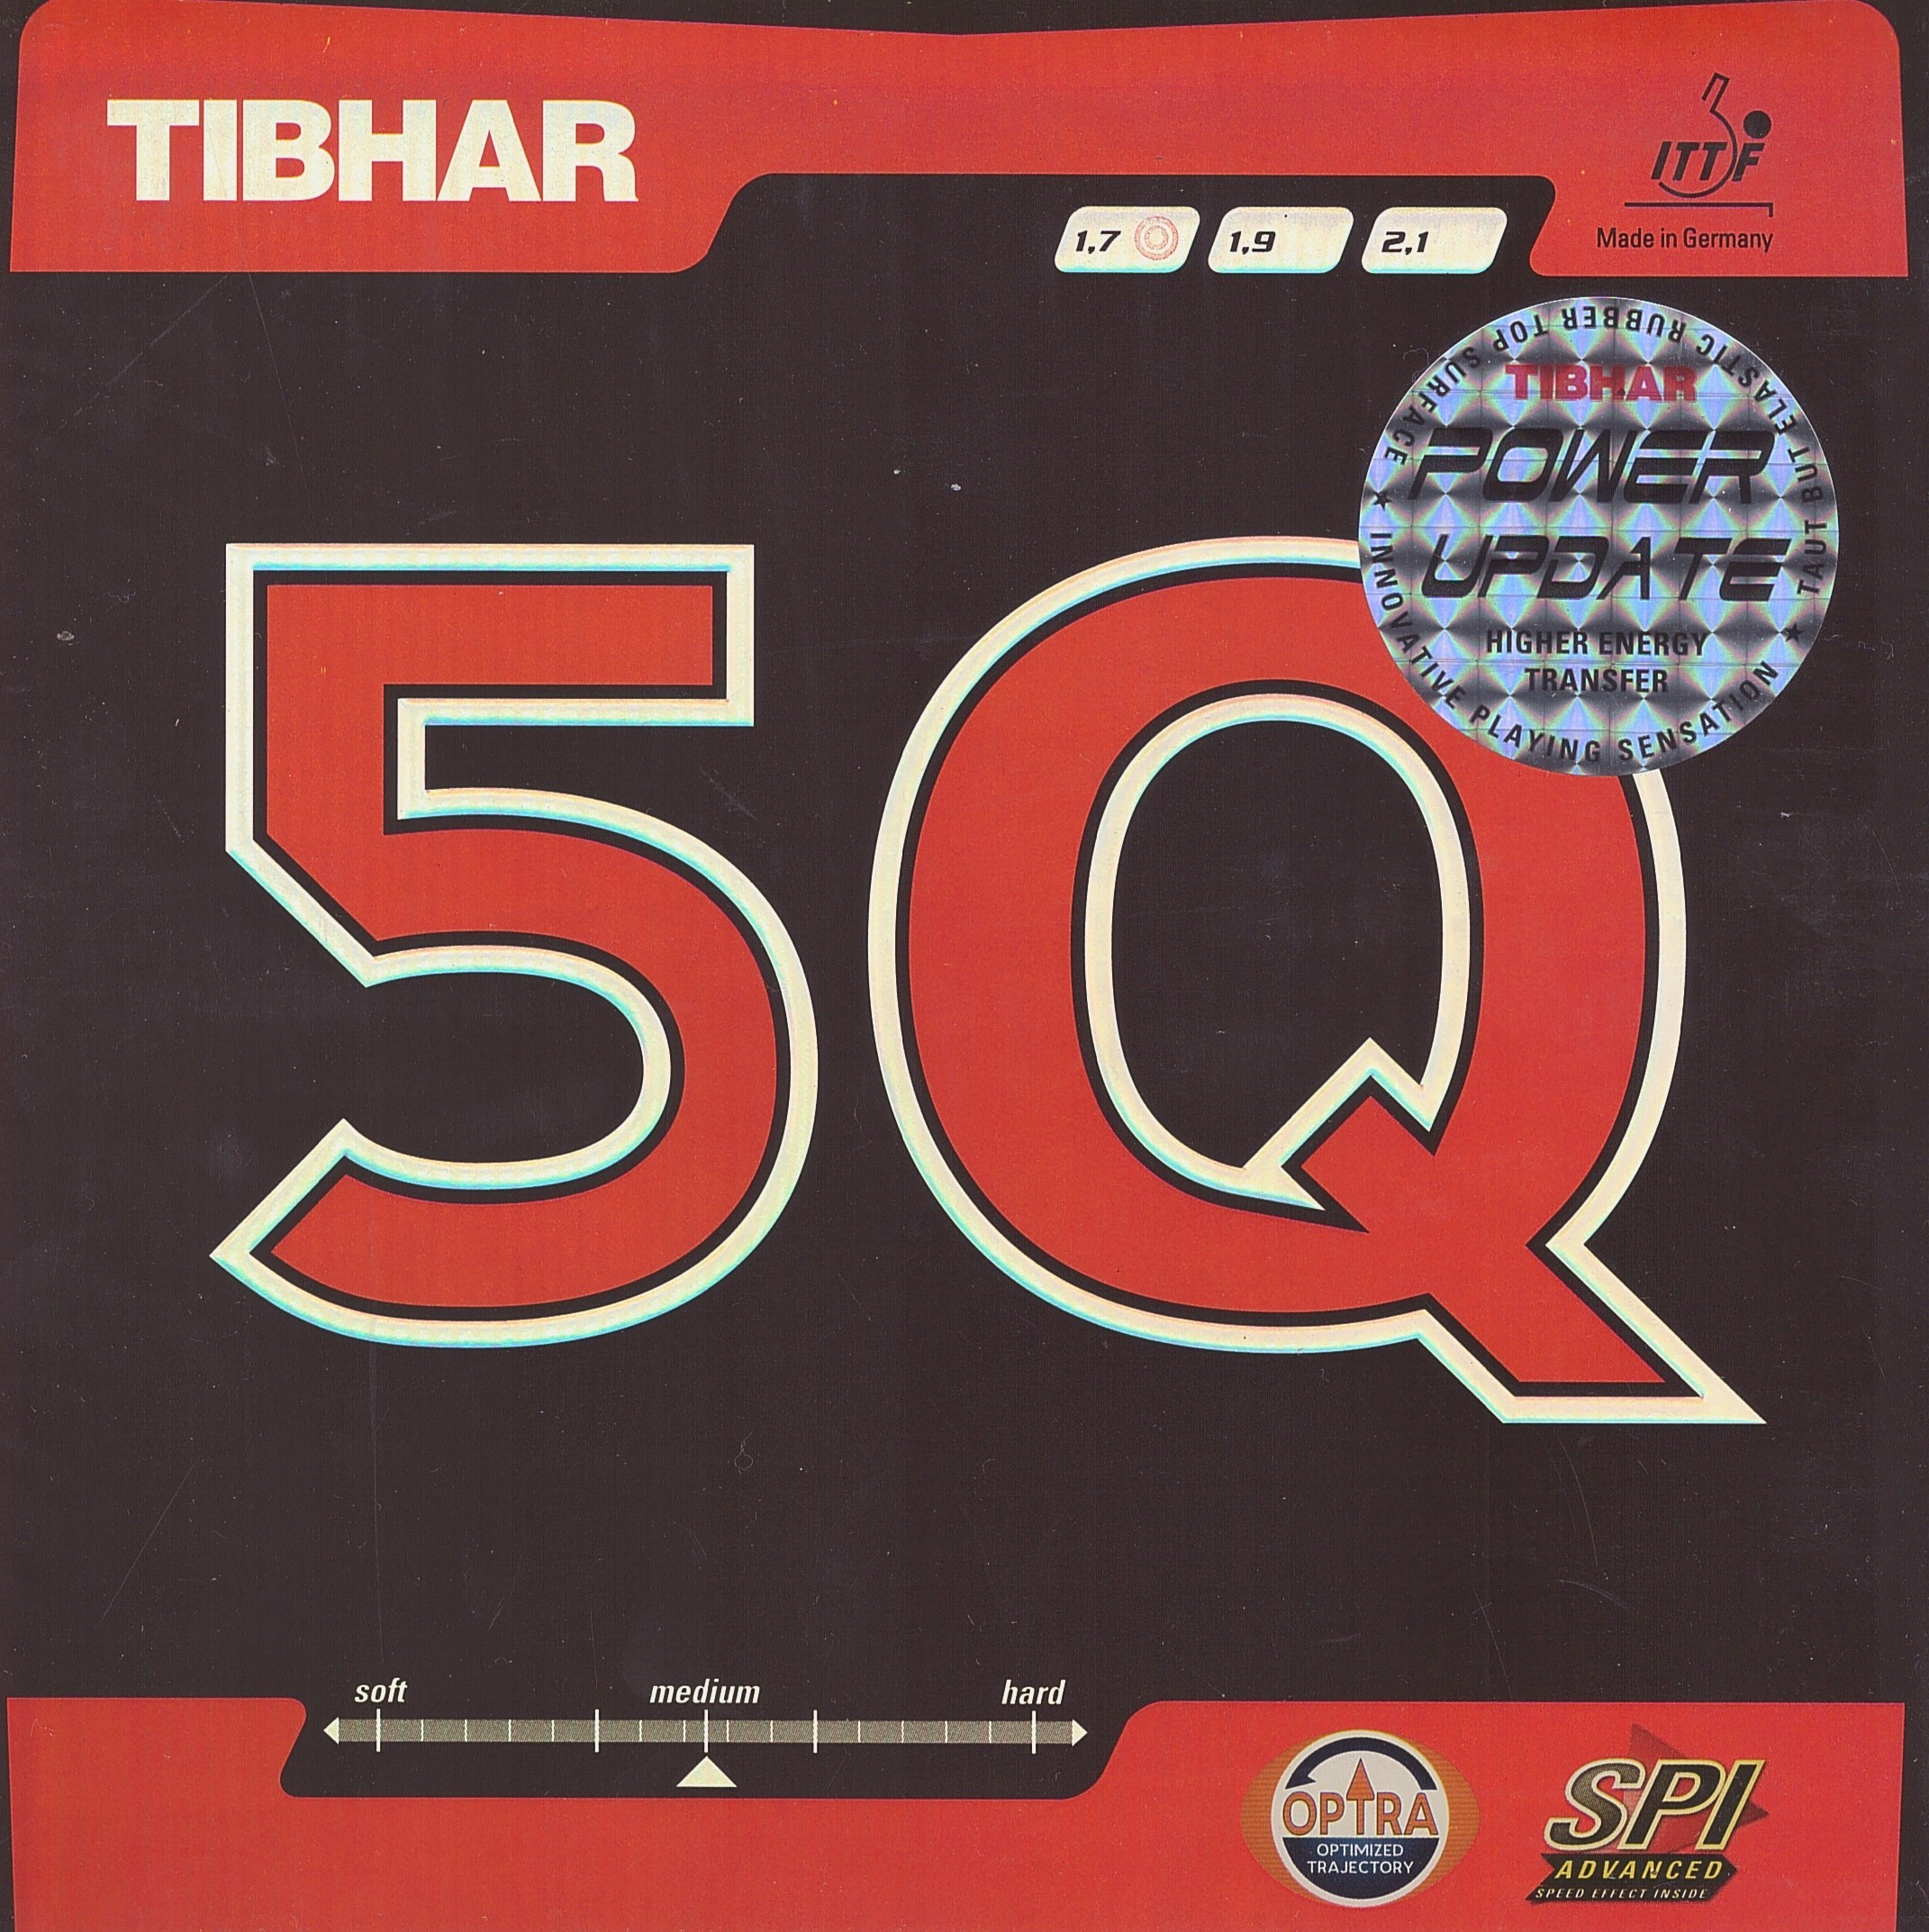 Tibhar 5Q Power Update Table Tennis Rubber